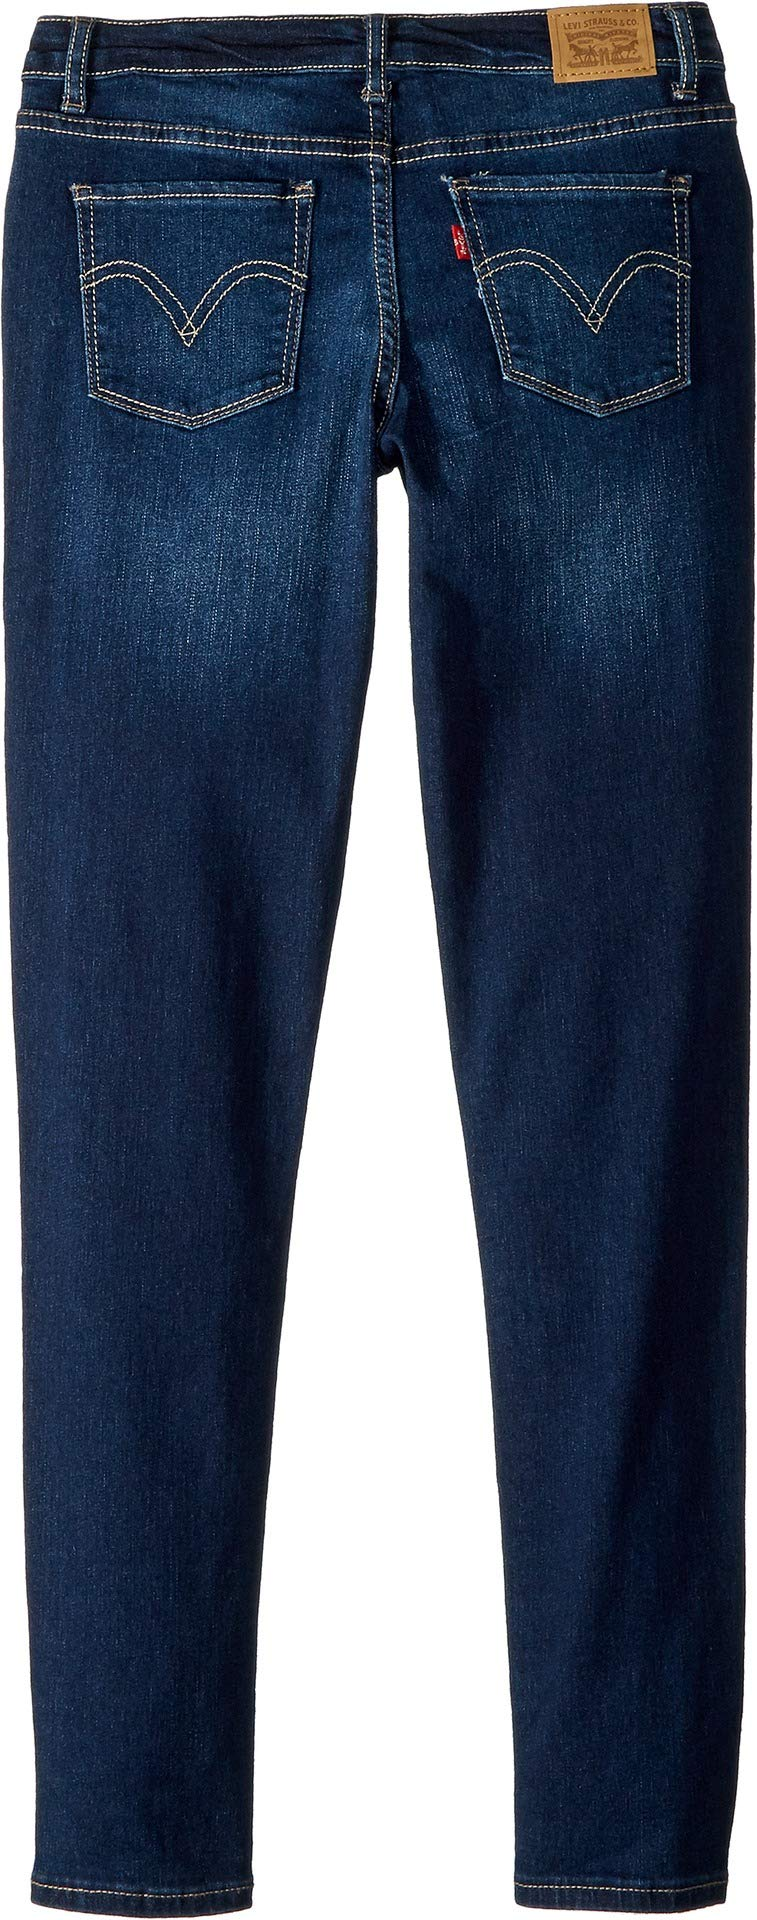 Levi's Girls' Big 710 Super Skinny Fit Jeans, Atomic, 14 by Levi's (Image #2)